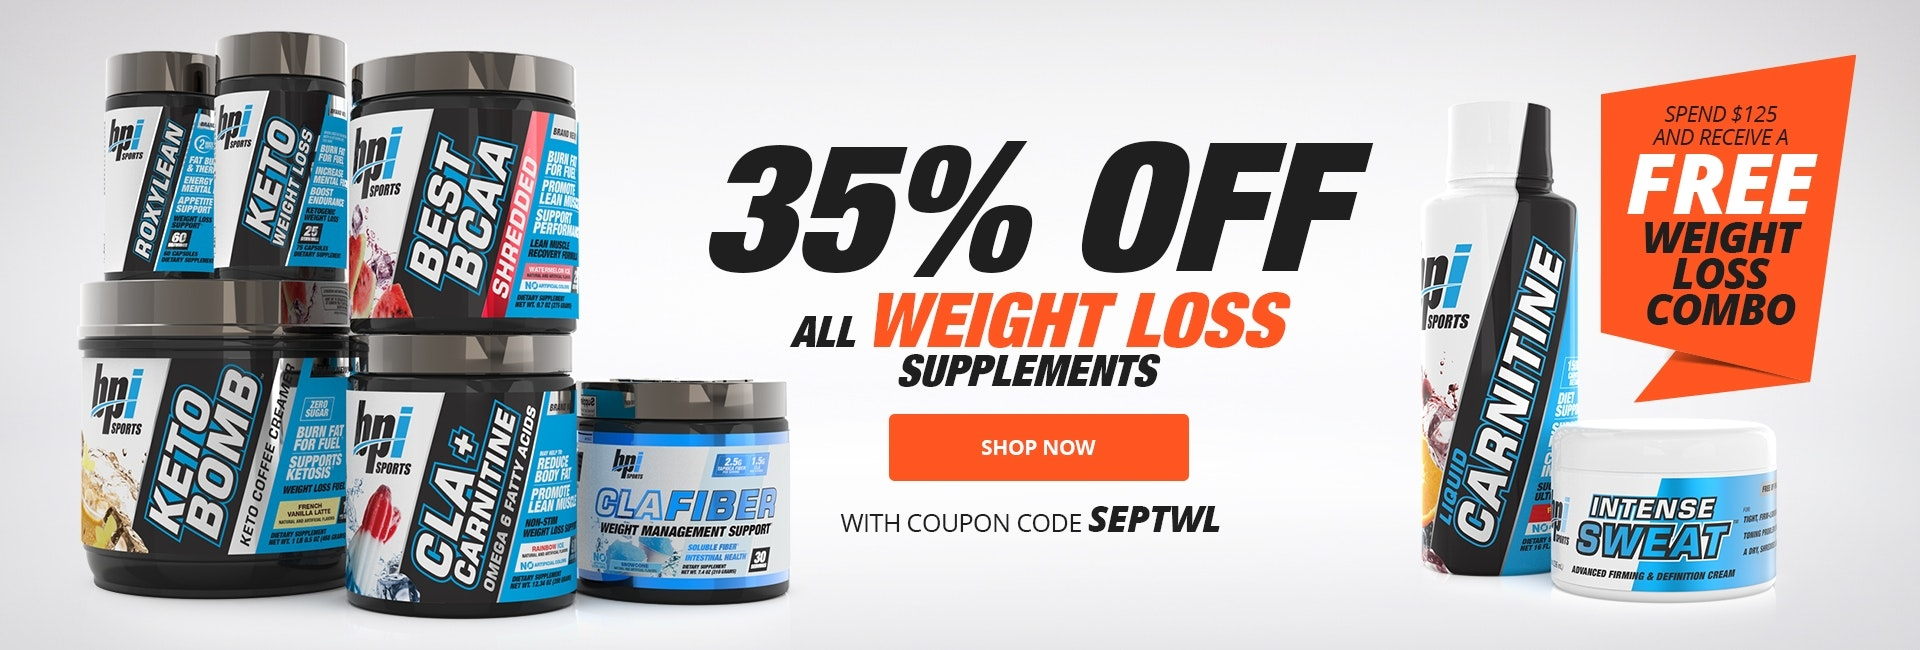 35 OFF WEIGHT LOSS SUPPLEMENT FREE WEIGHT LOSS COMBO 125 1920 X650 HP DESK